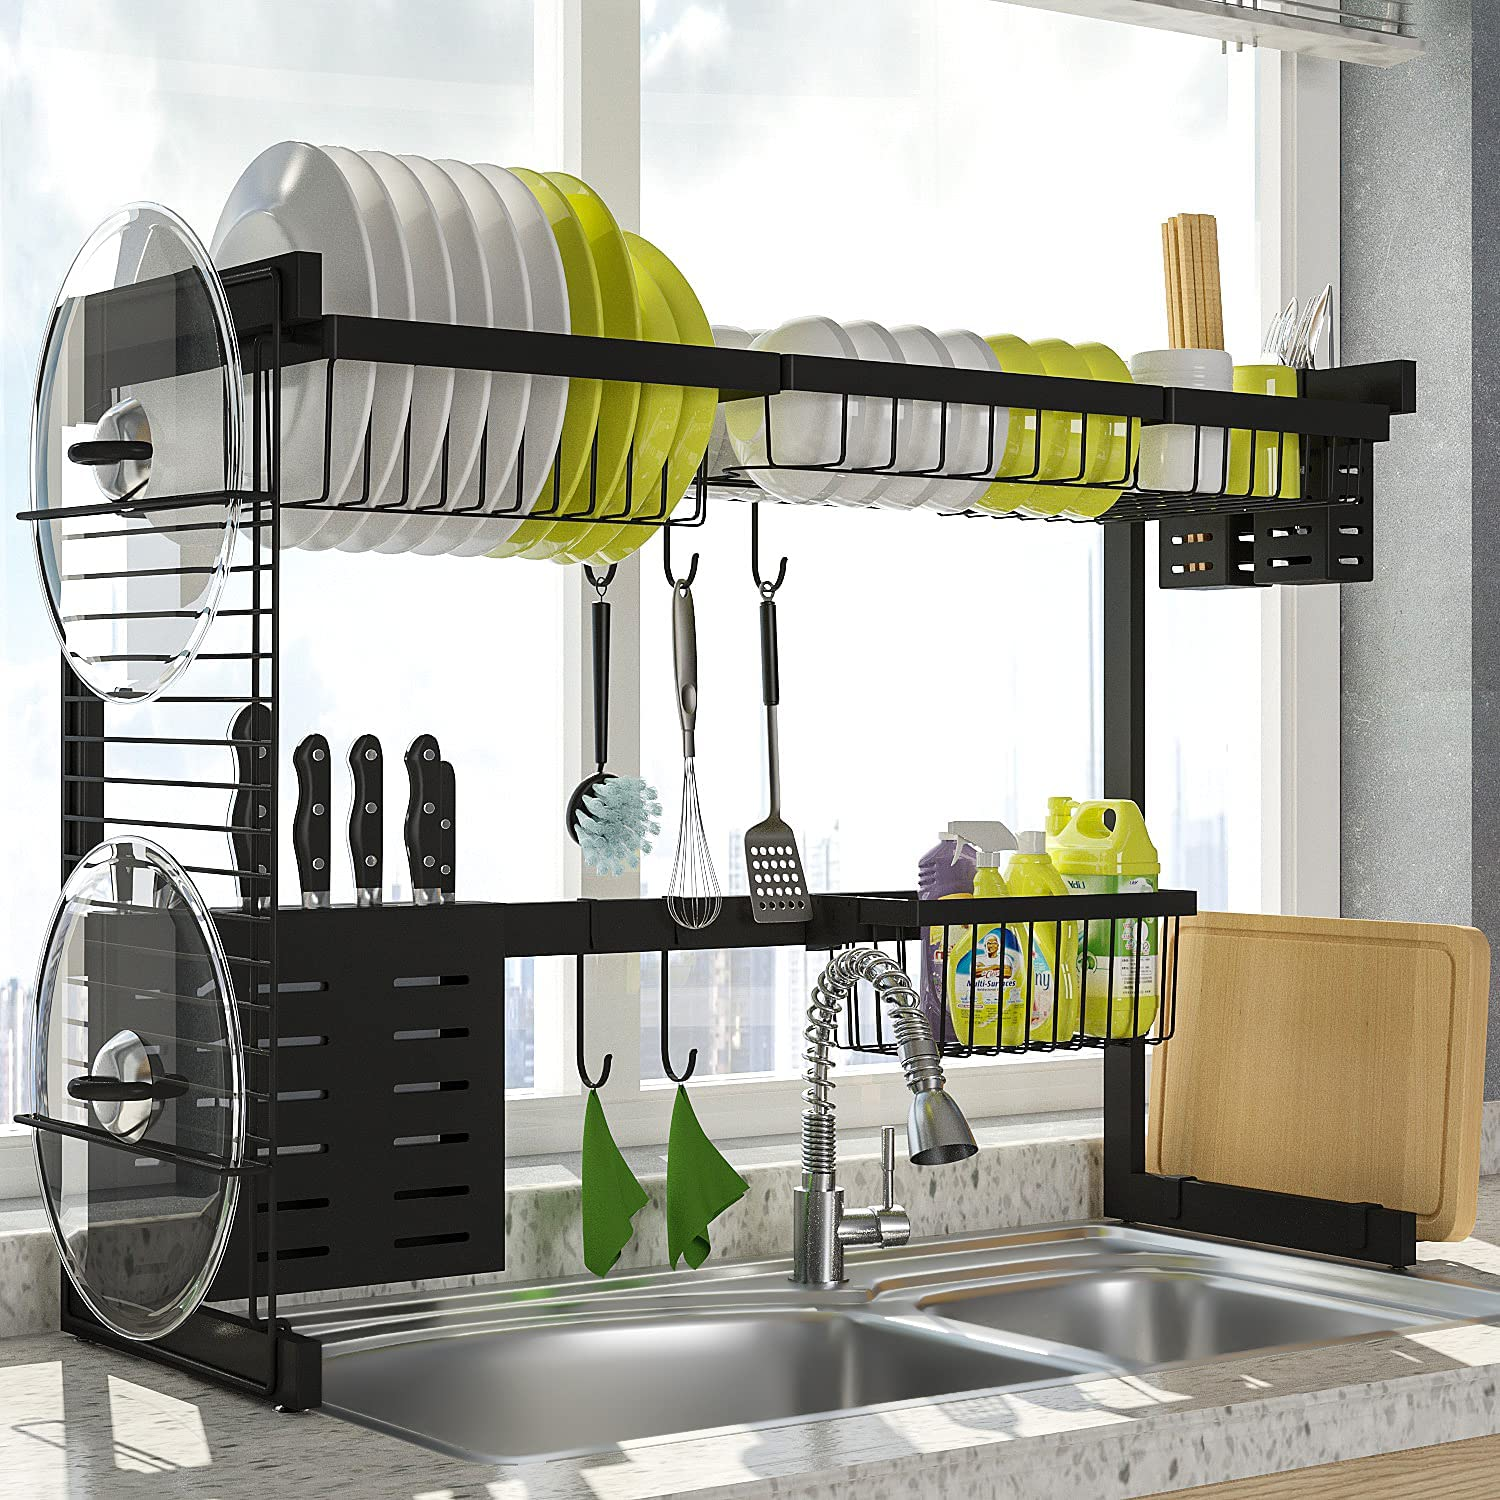 Popular brand in the world Over 2021 spring and summer new The Sink Dish Drying Rack TOOLF Above Sin 2-Tier